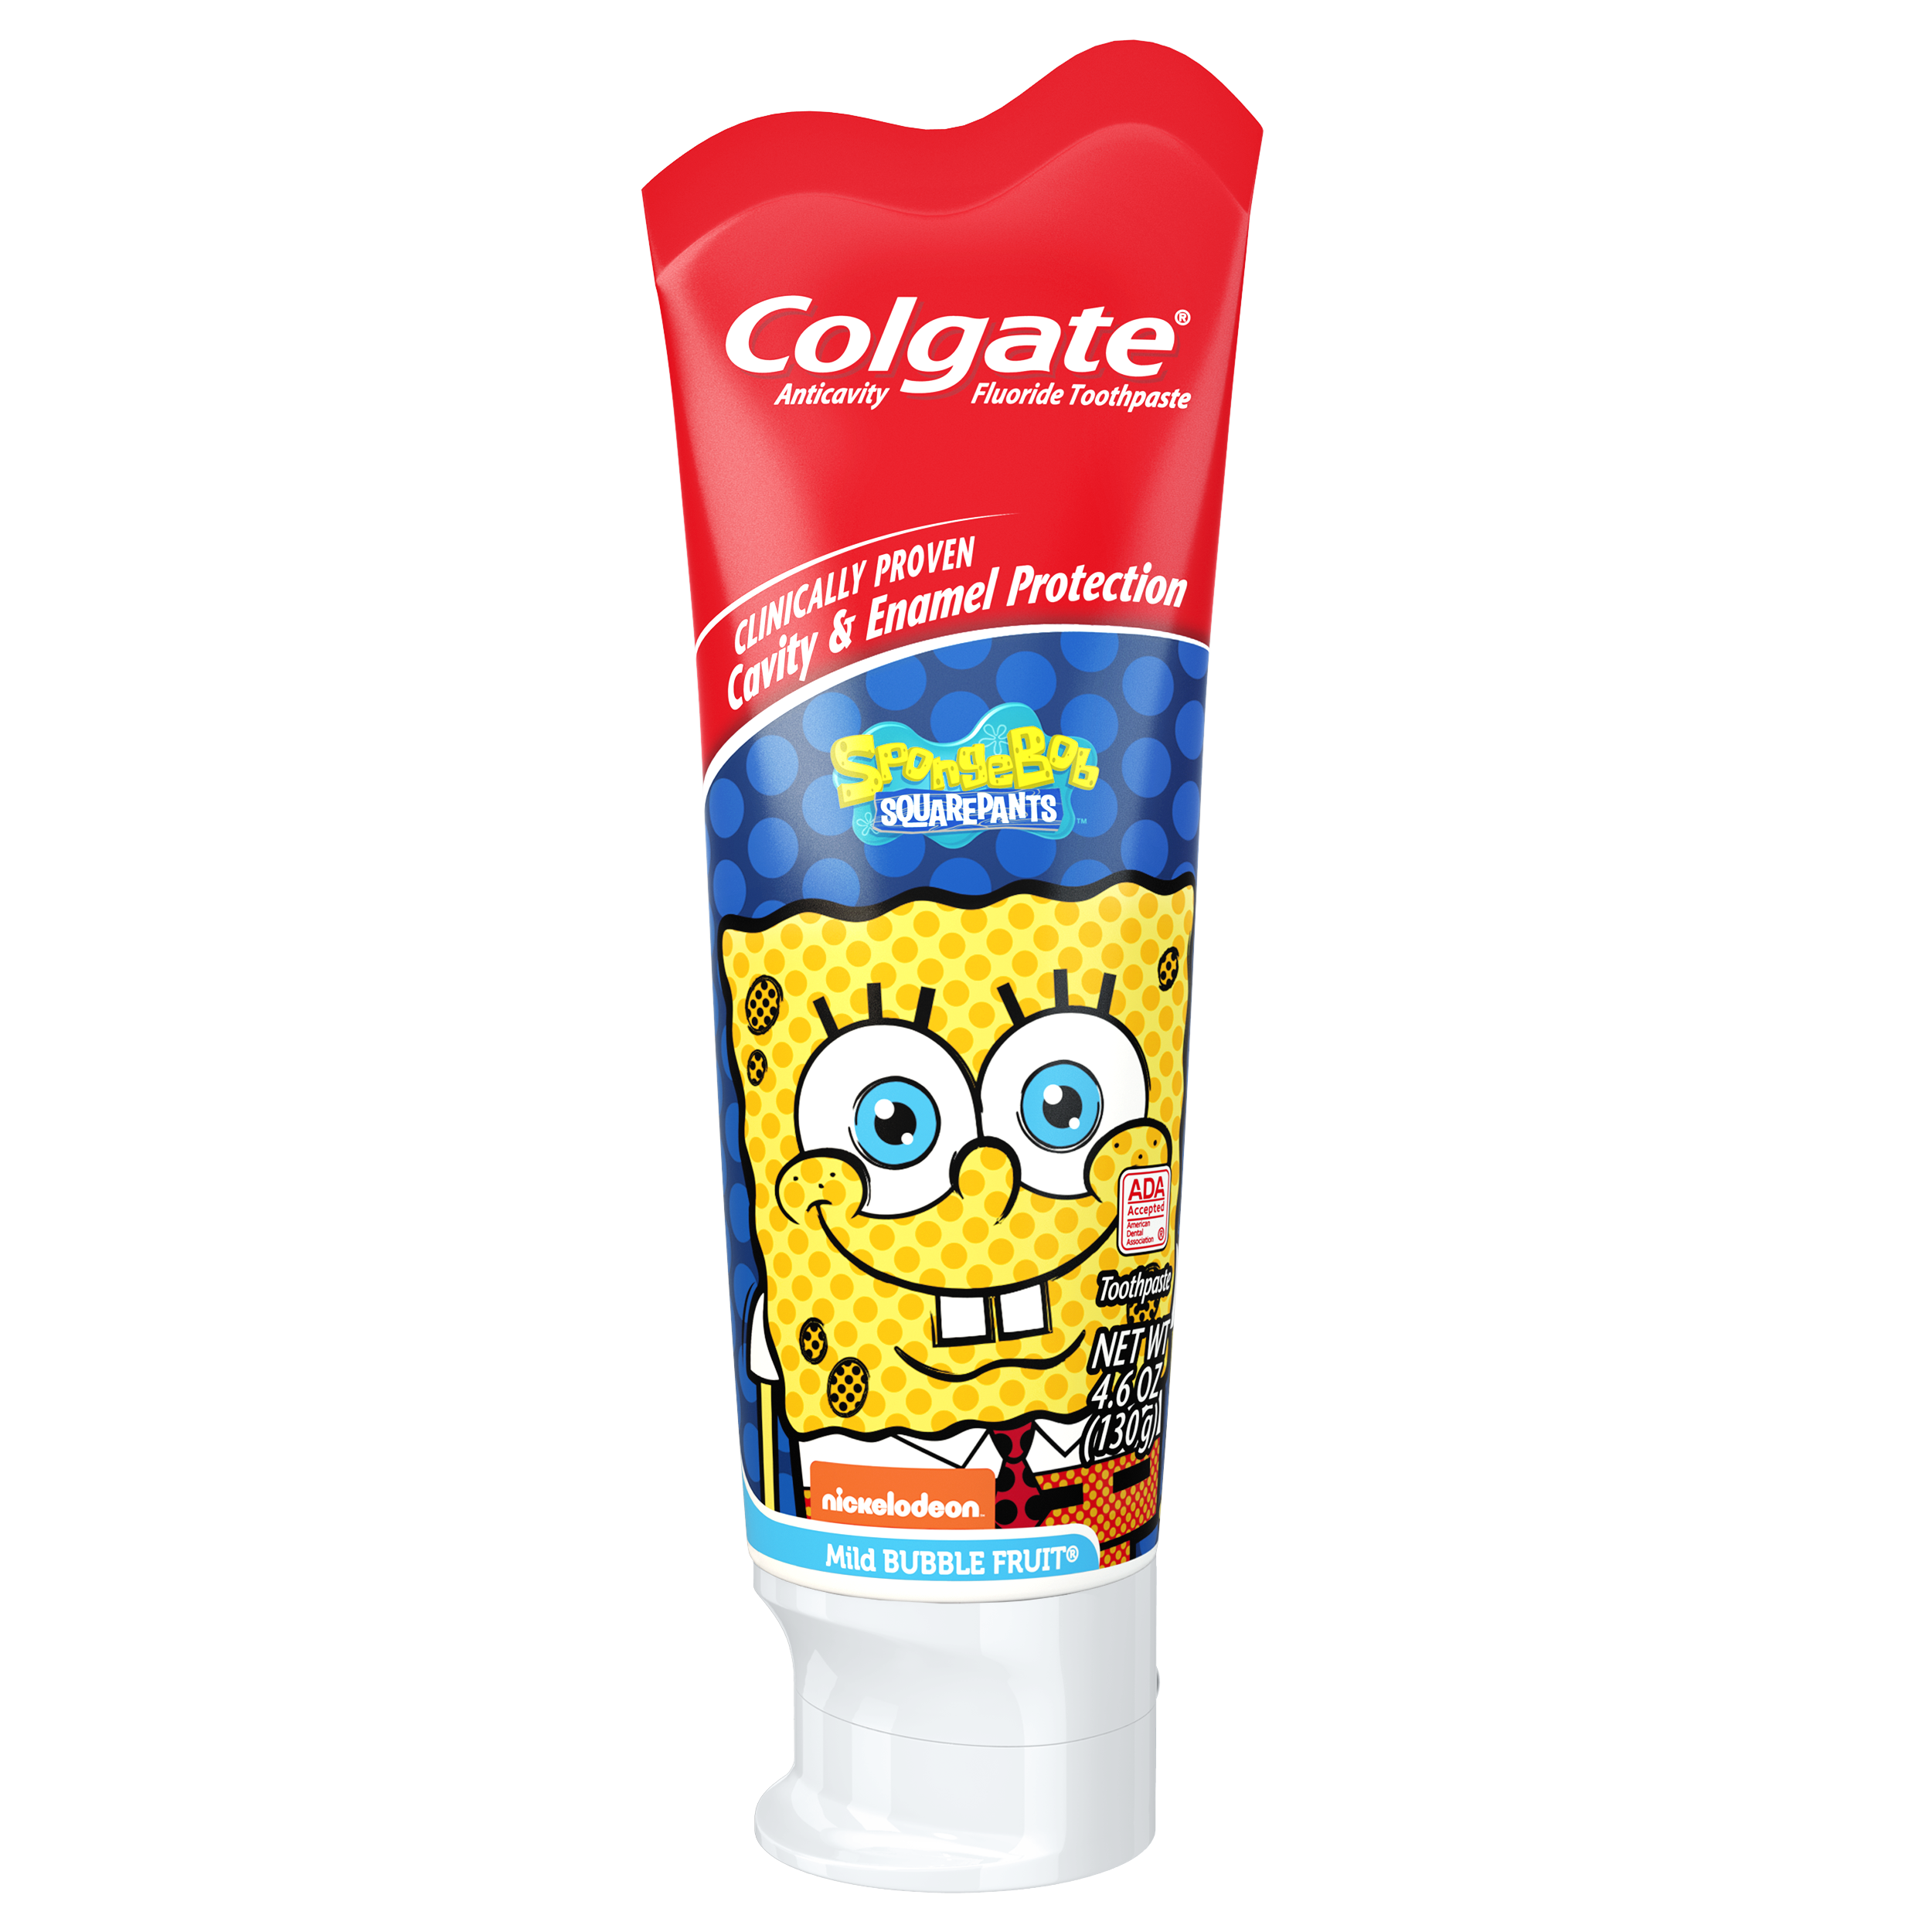 Colgate Spongebob Squarepants Fluoride Toothpaste Mild Bubble Fruit, 4.6 oz